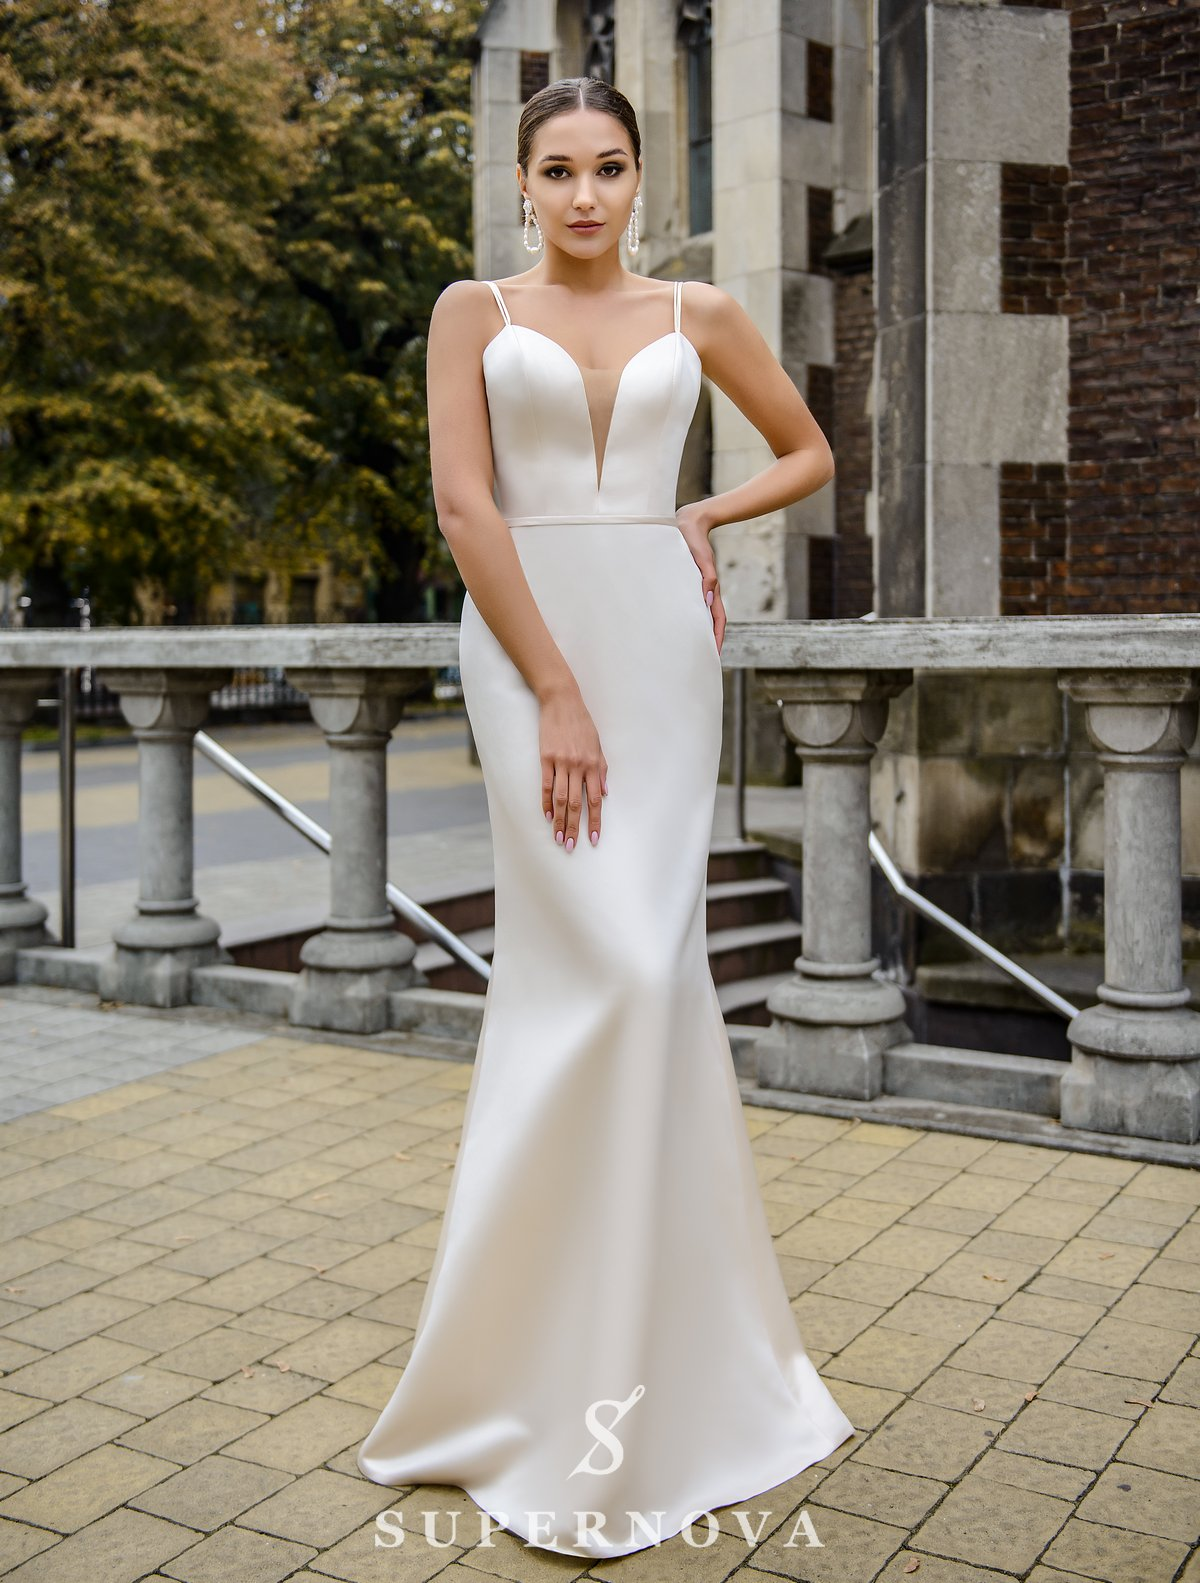 Wedding set consisting of satin dress and cape wholesale from SuperNova-1